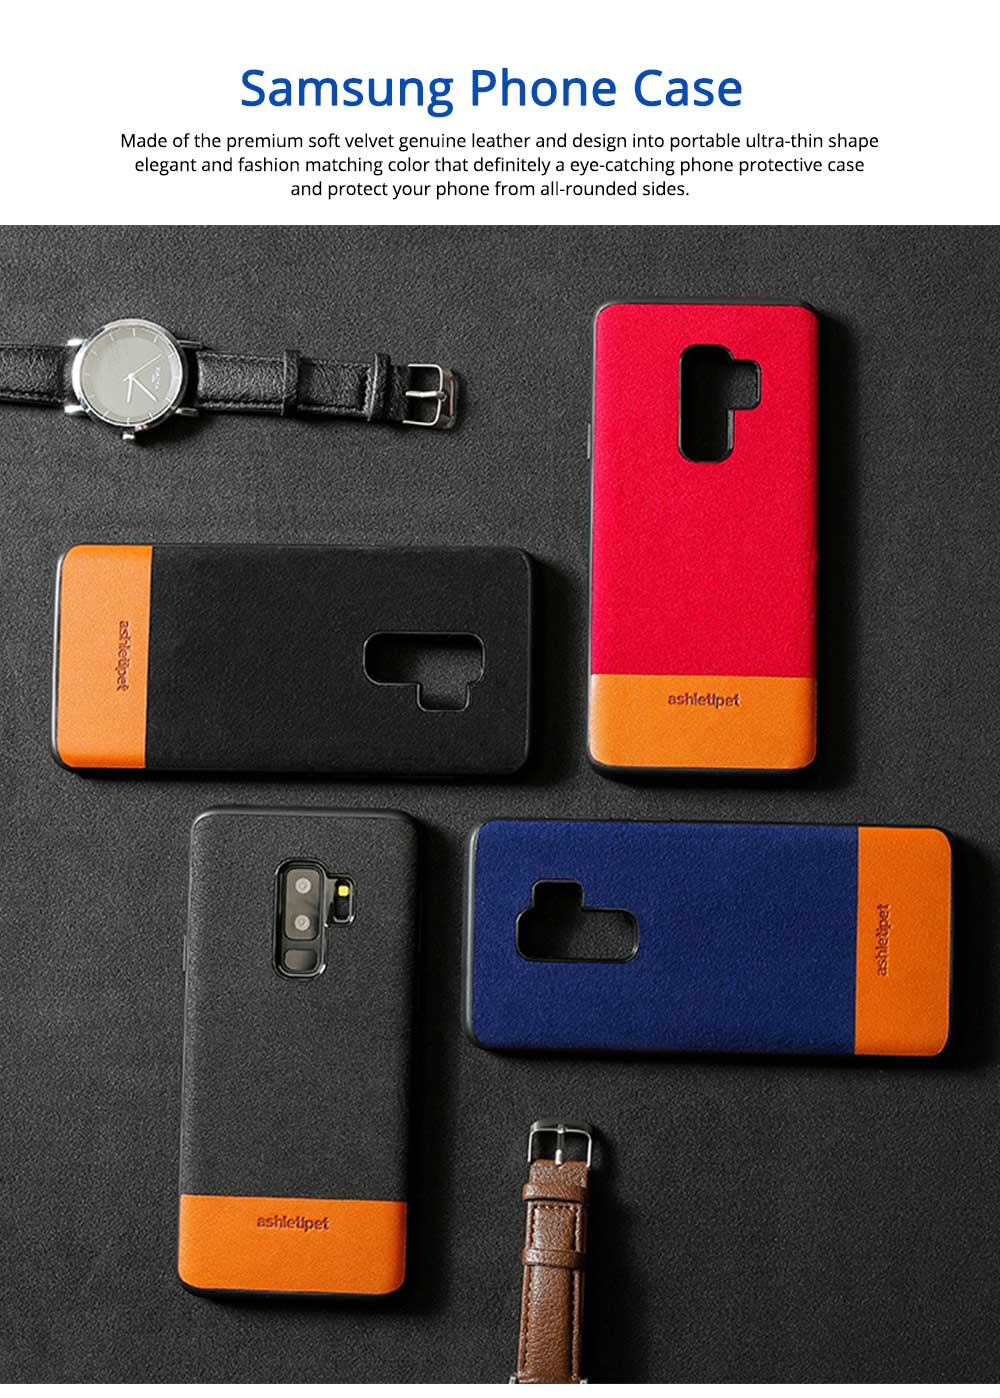 Samsung Genuine Leather Case, Creative Color Matching Elegant Phone Protective Case for Samsung note8, S7 edge, S9 7